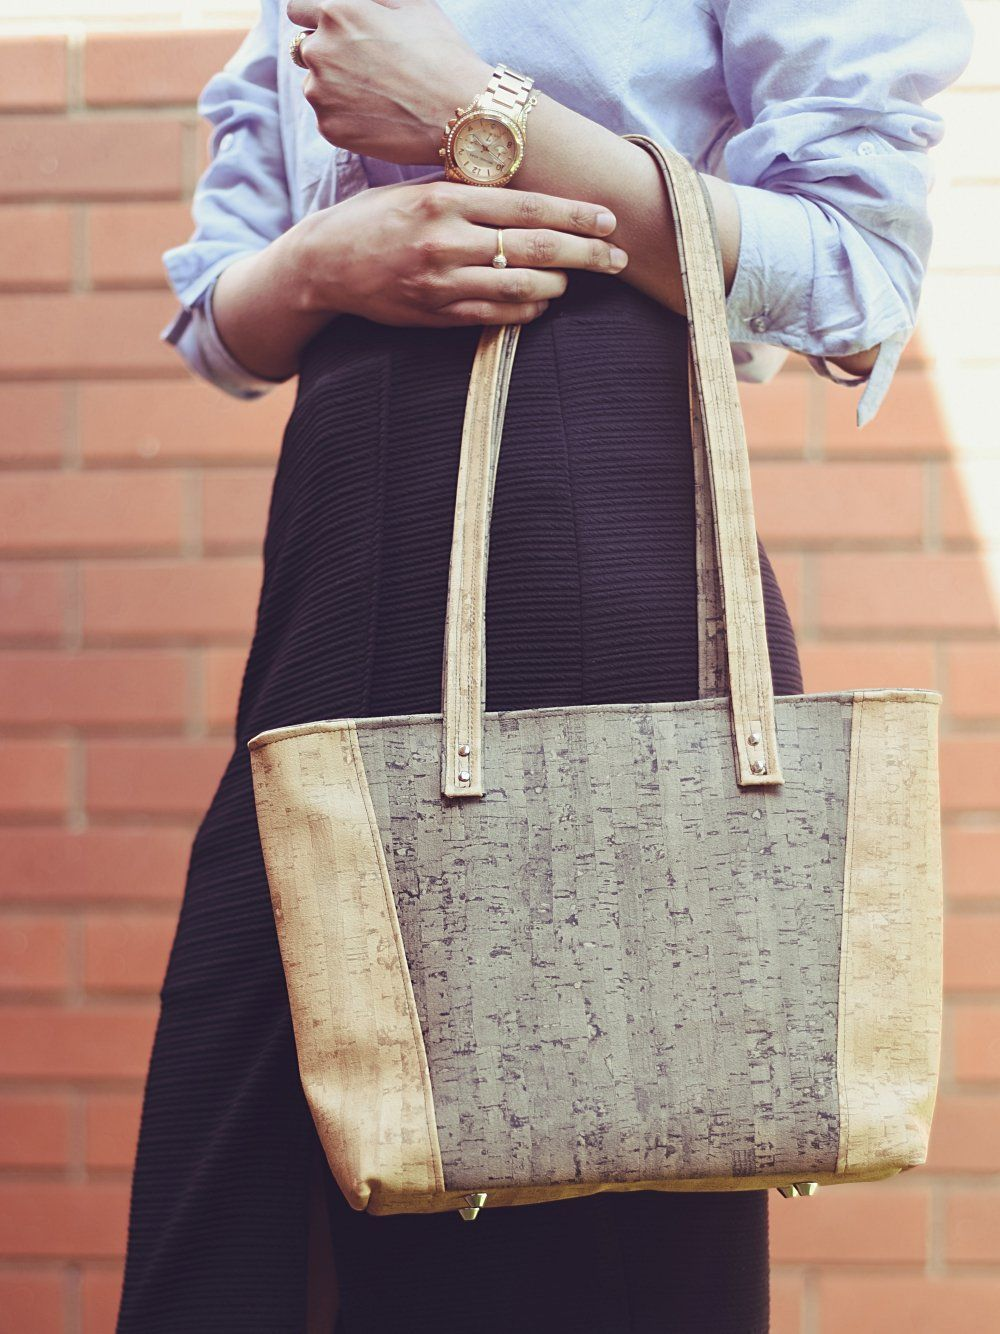 Sassy Eco Totes Personalized Friendly Handcrafted Premium Bags Check It Out Now